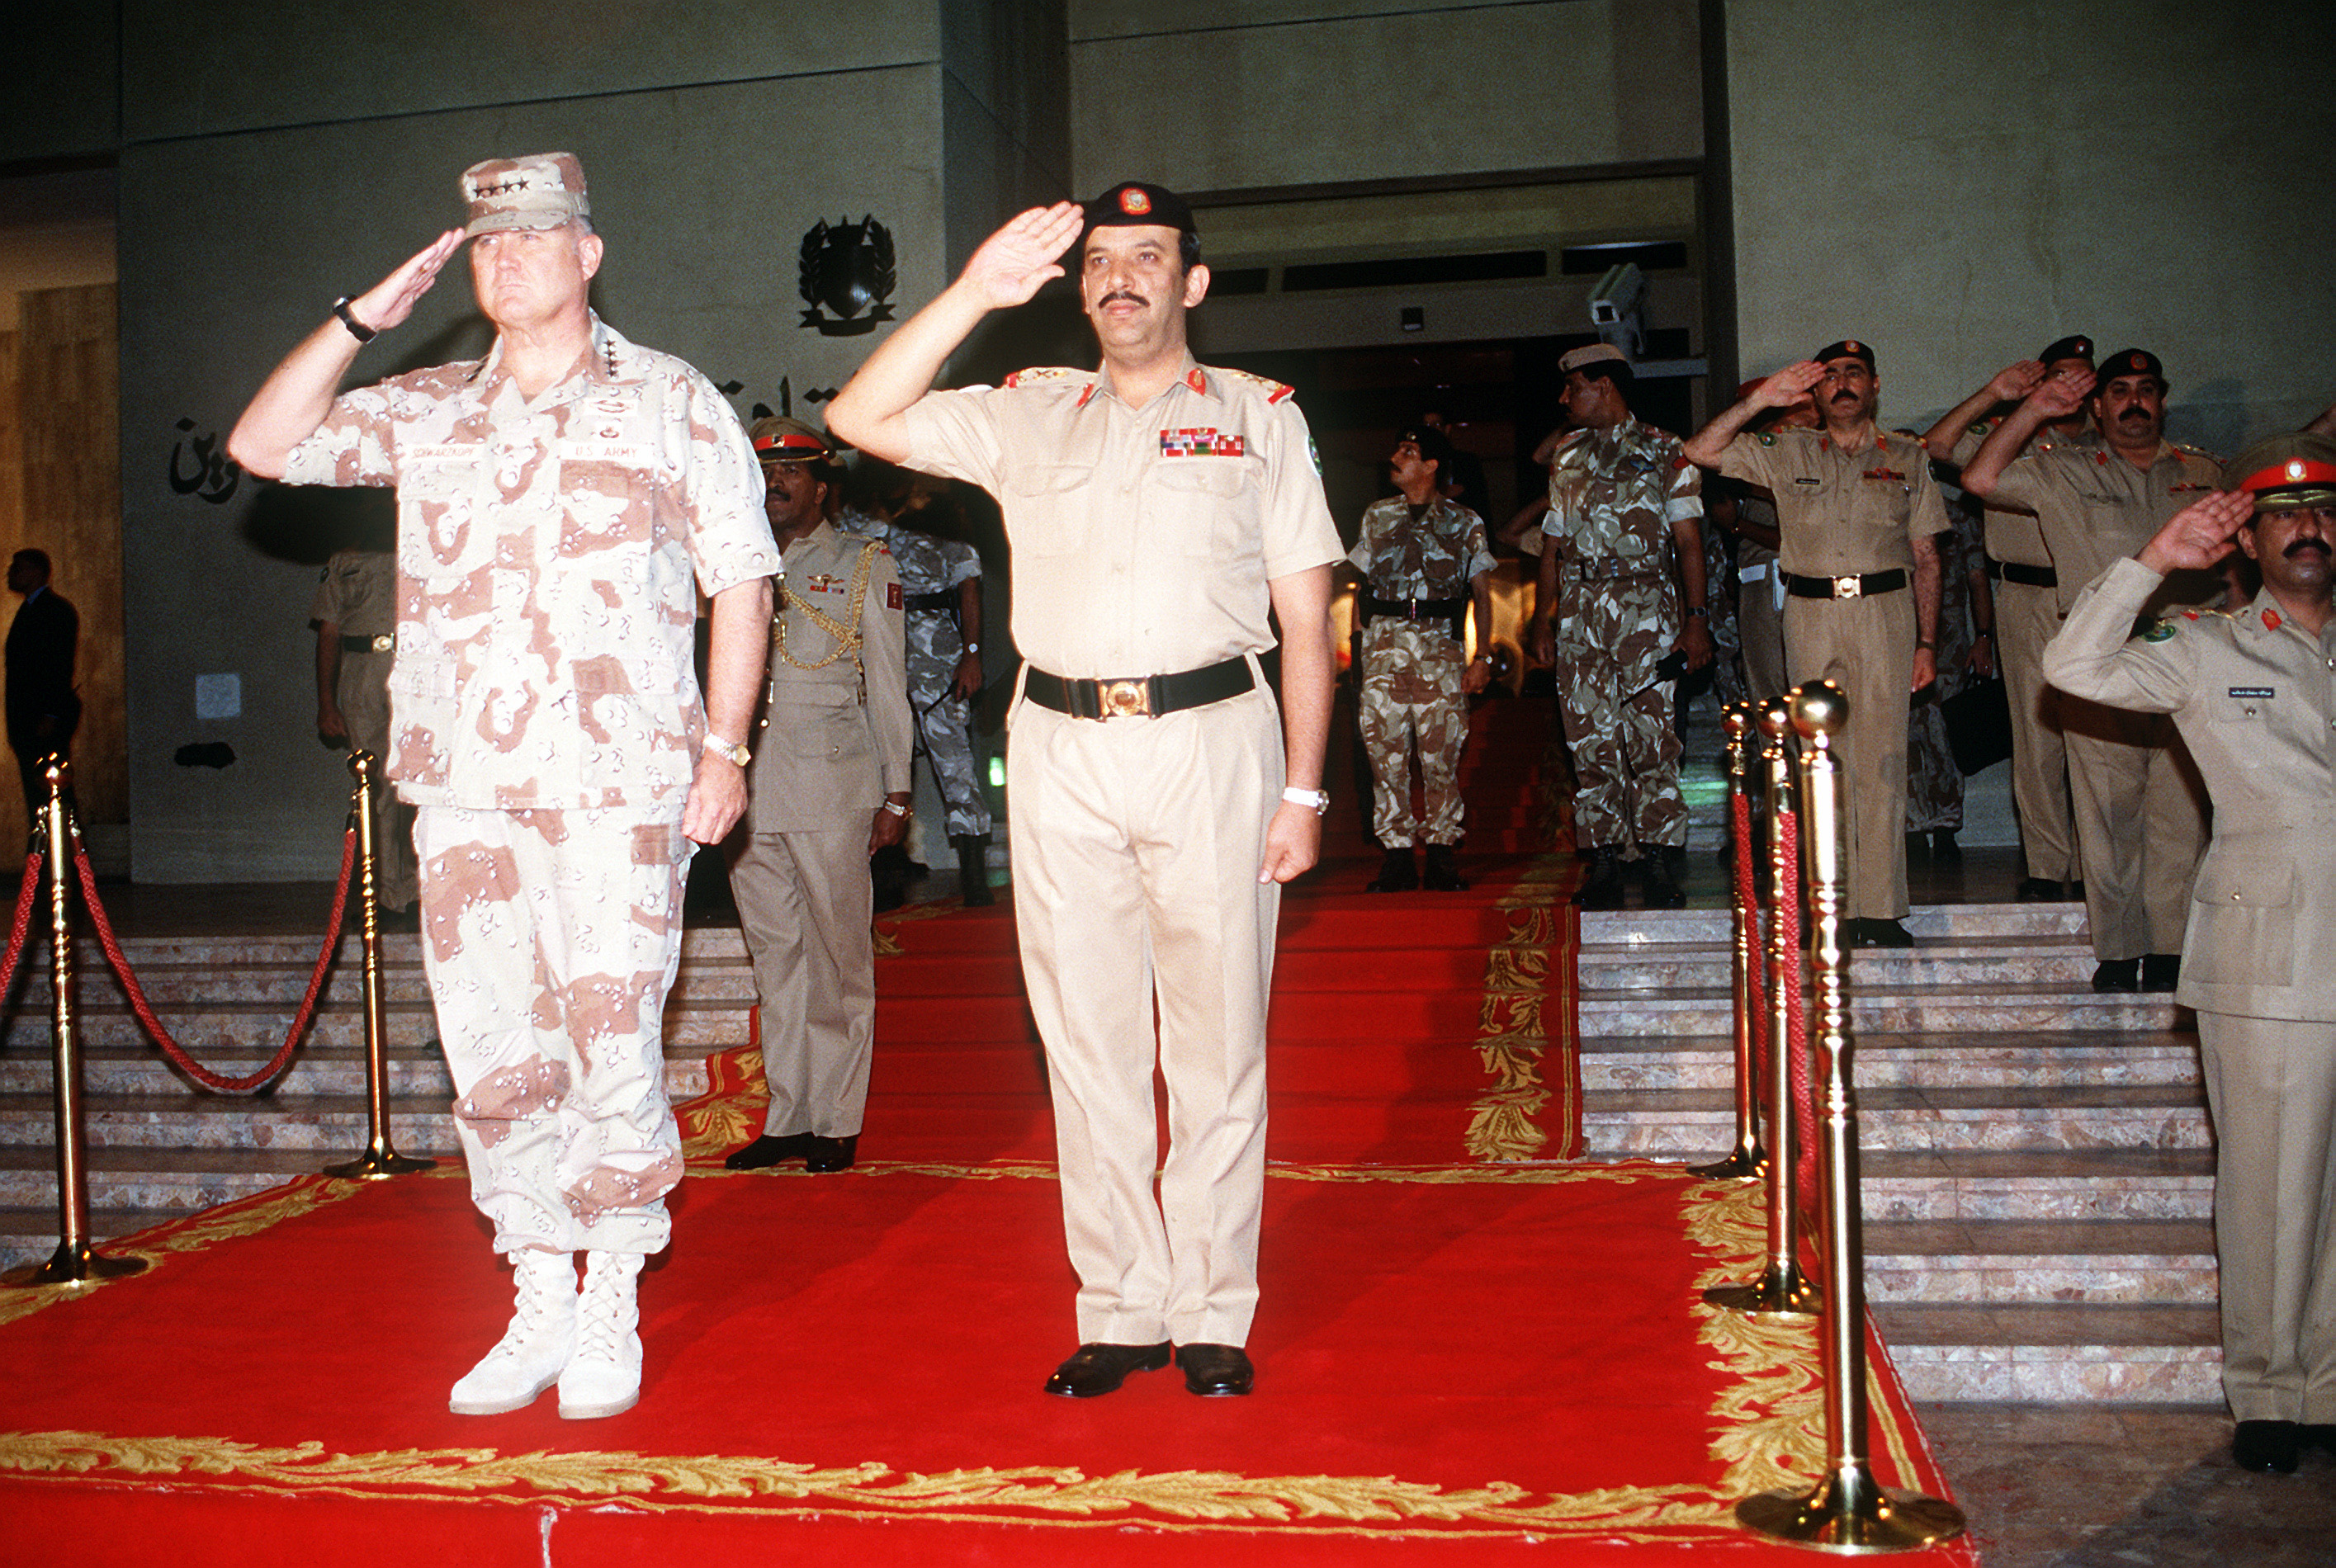 GEN. Norman Schwarzkopf, commander-in-chief, U.S. Central Command, and MAJ. GEN. Shaikh Khalifa Bin Ahmed Al-Khalifa, minister of defense, present arms as the U.S. and Bahraini national anthems are played during a ceremony at the Bahrain defense forces headquarters commemorating the Allied success during Operation Desert Storm.